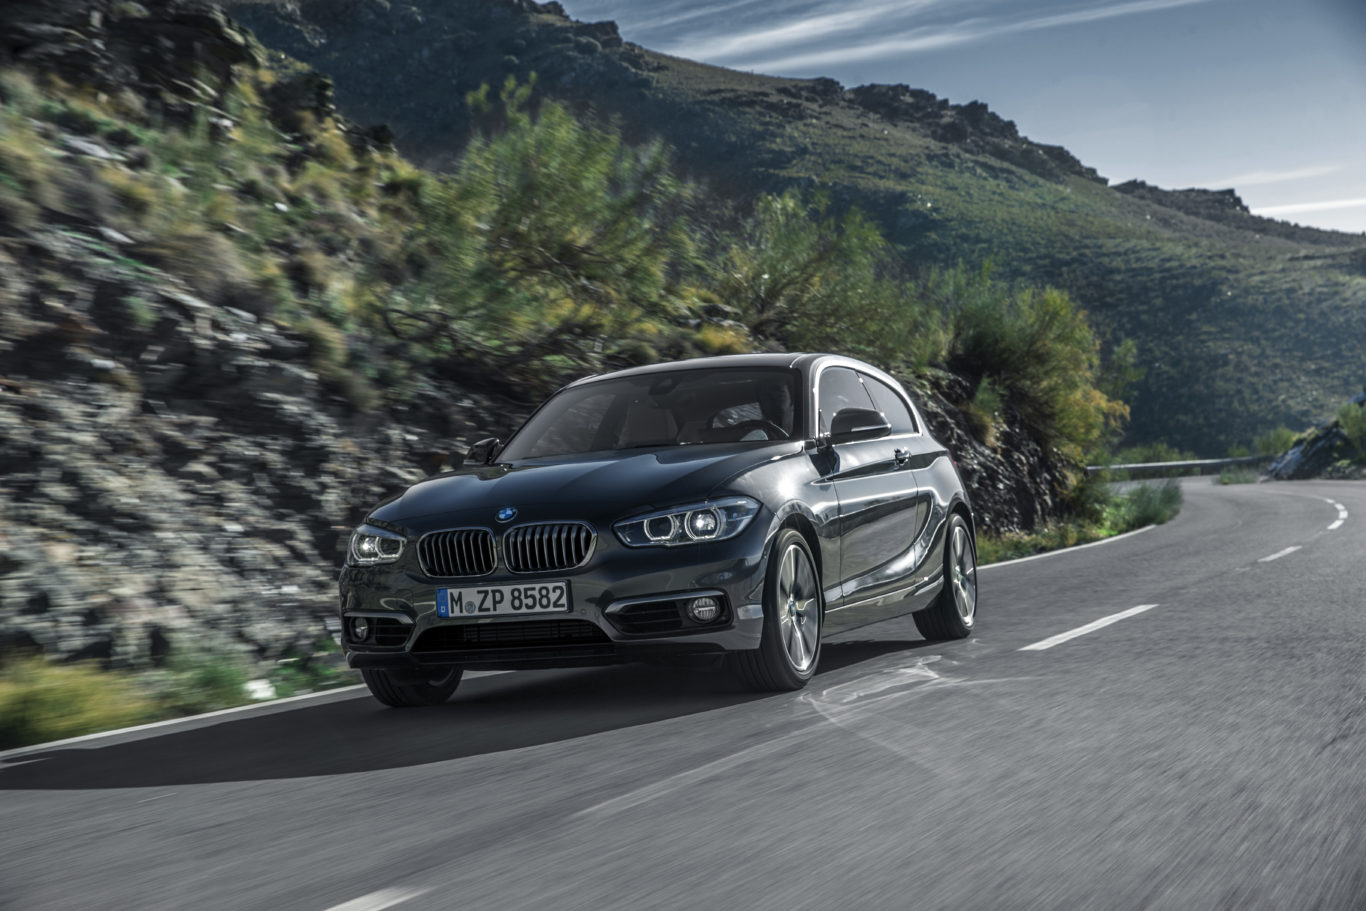 The latest 1 Series has many trademark BMW styling touches